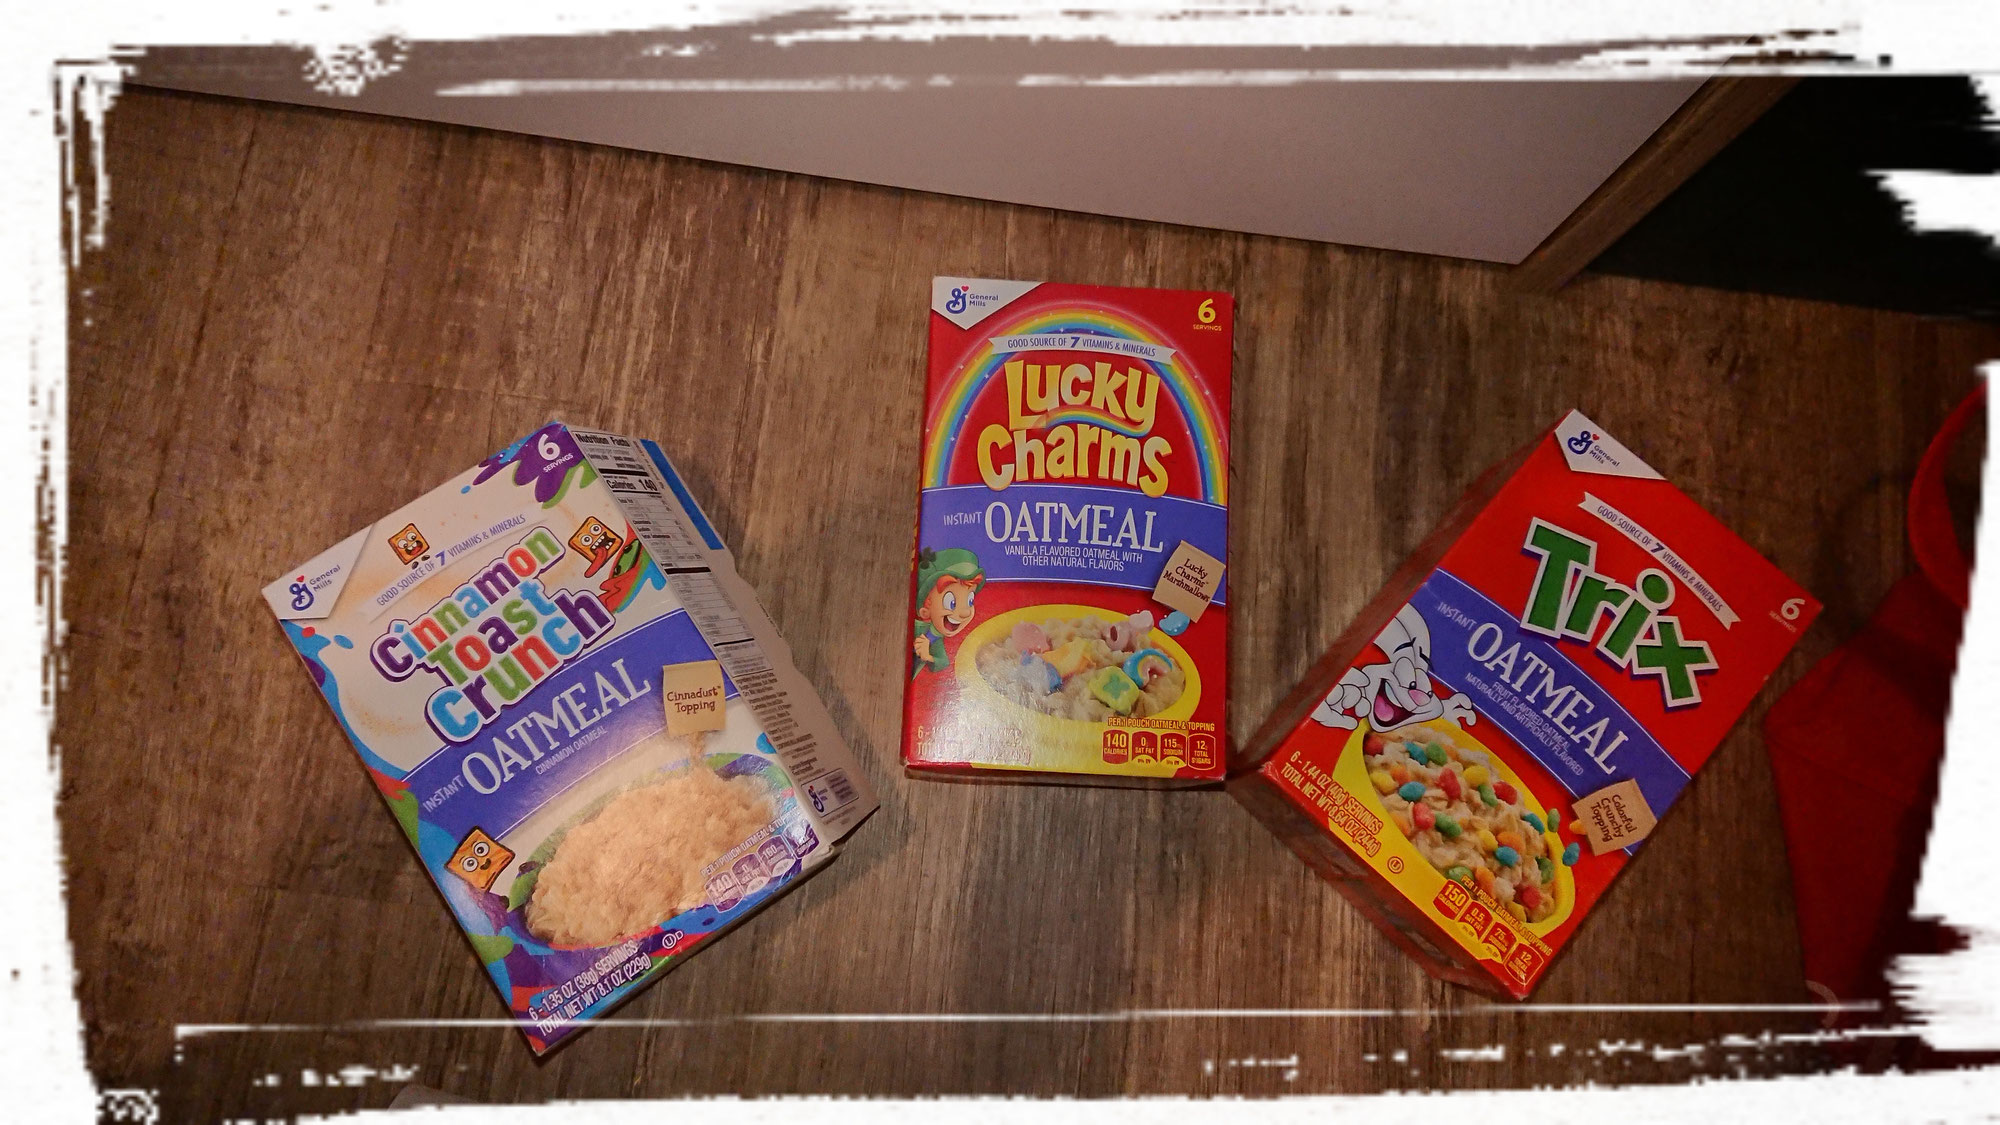 General Mills Oatmeal: Trix, Lucky Charms und Cinnamon Toast Crunch